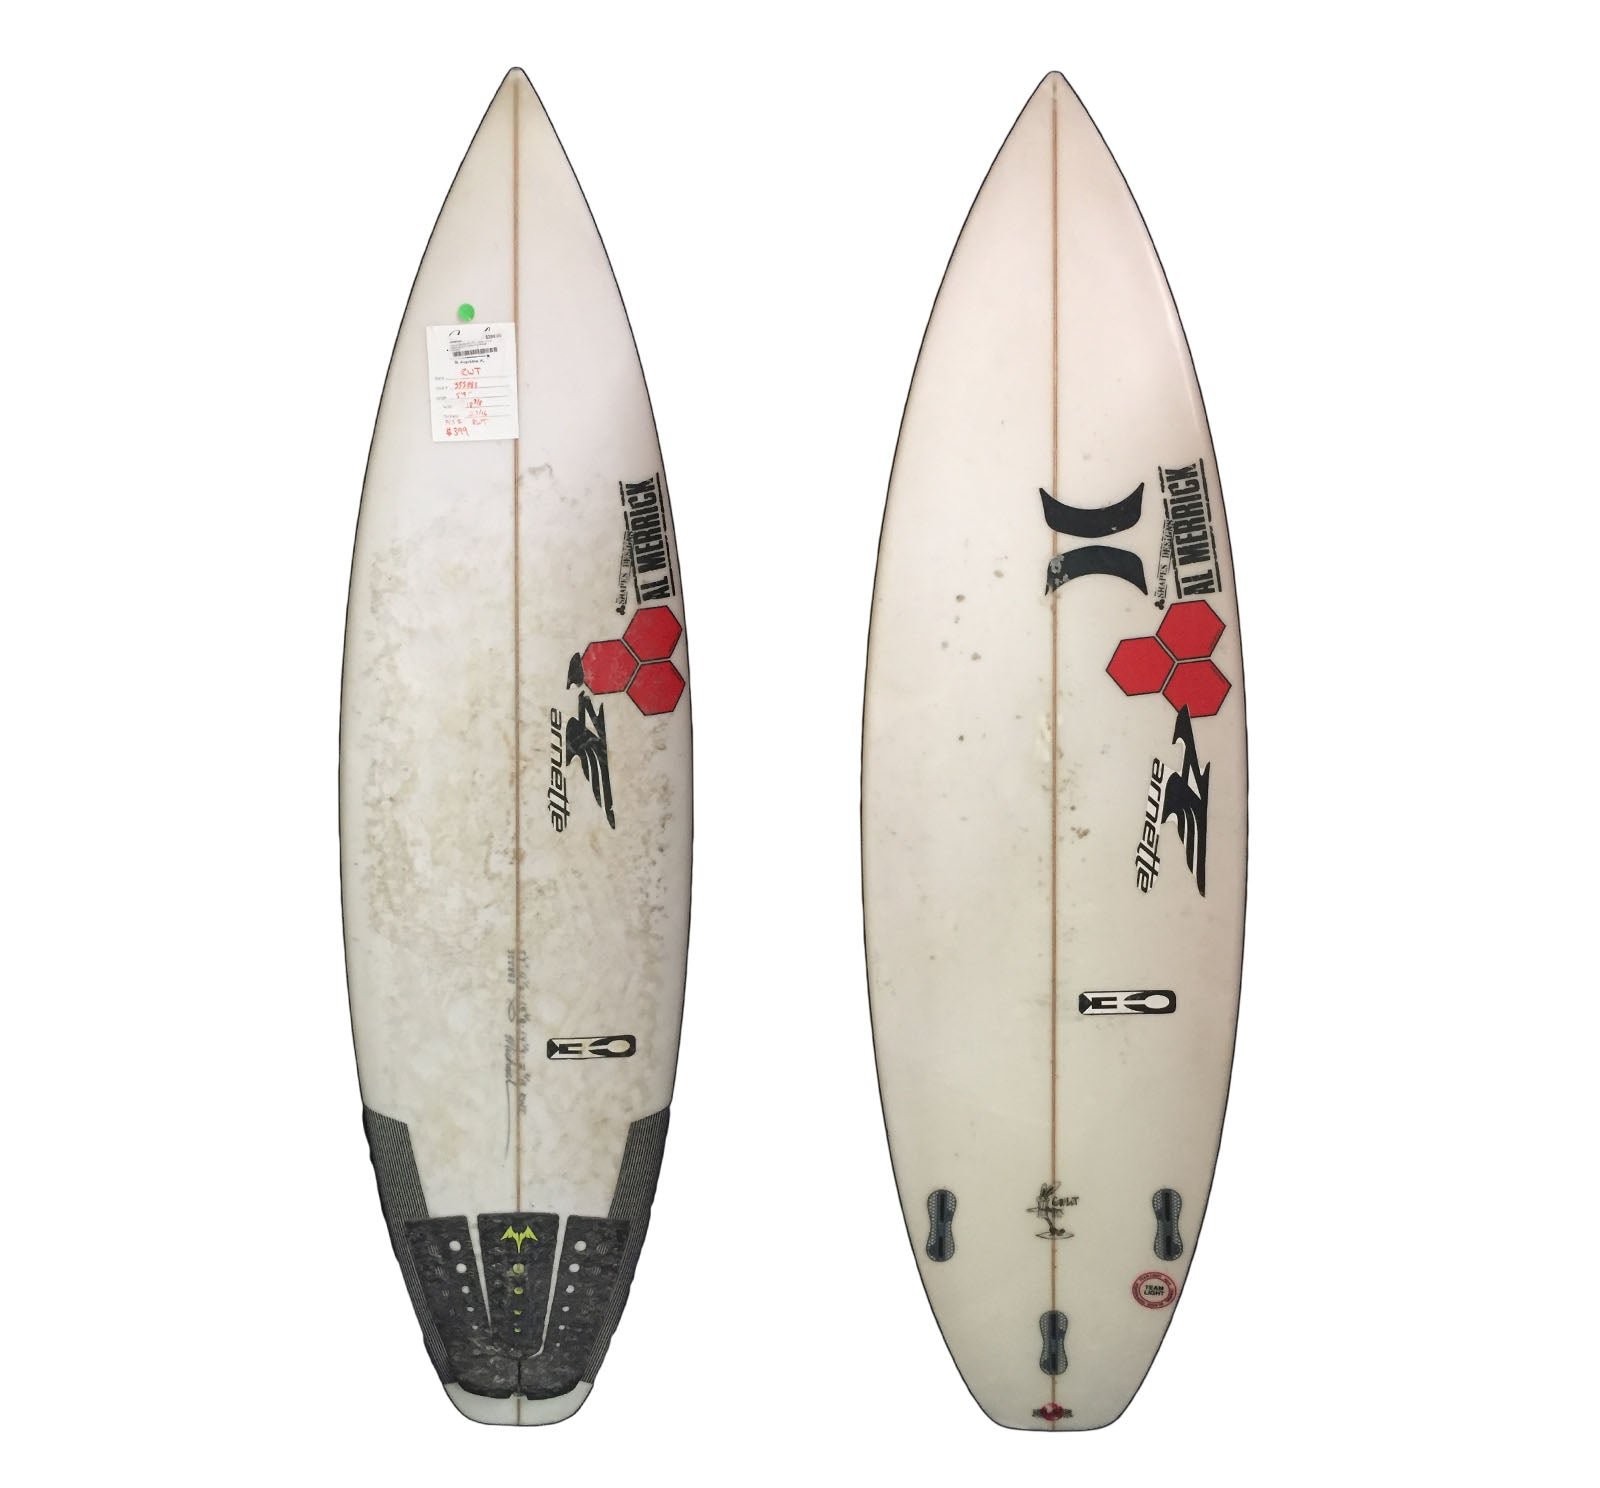 Channel Islands Girabbit RWT 5'9 x 18 3/8 x 2 3/16 Used Surfboard (Team Custom For Michael Dunphey)